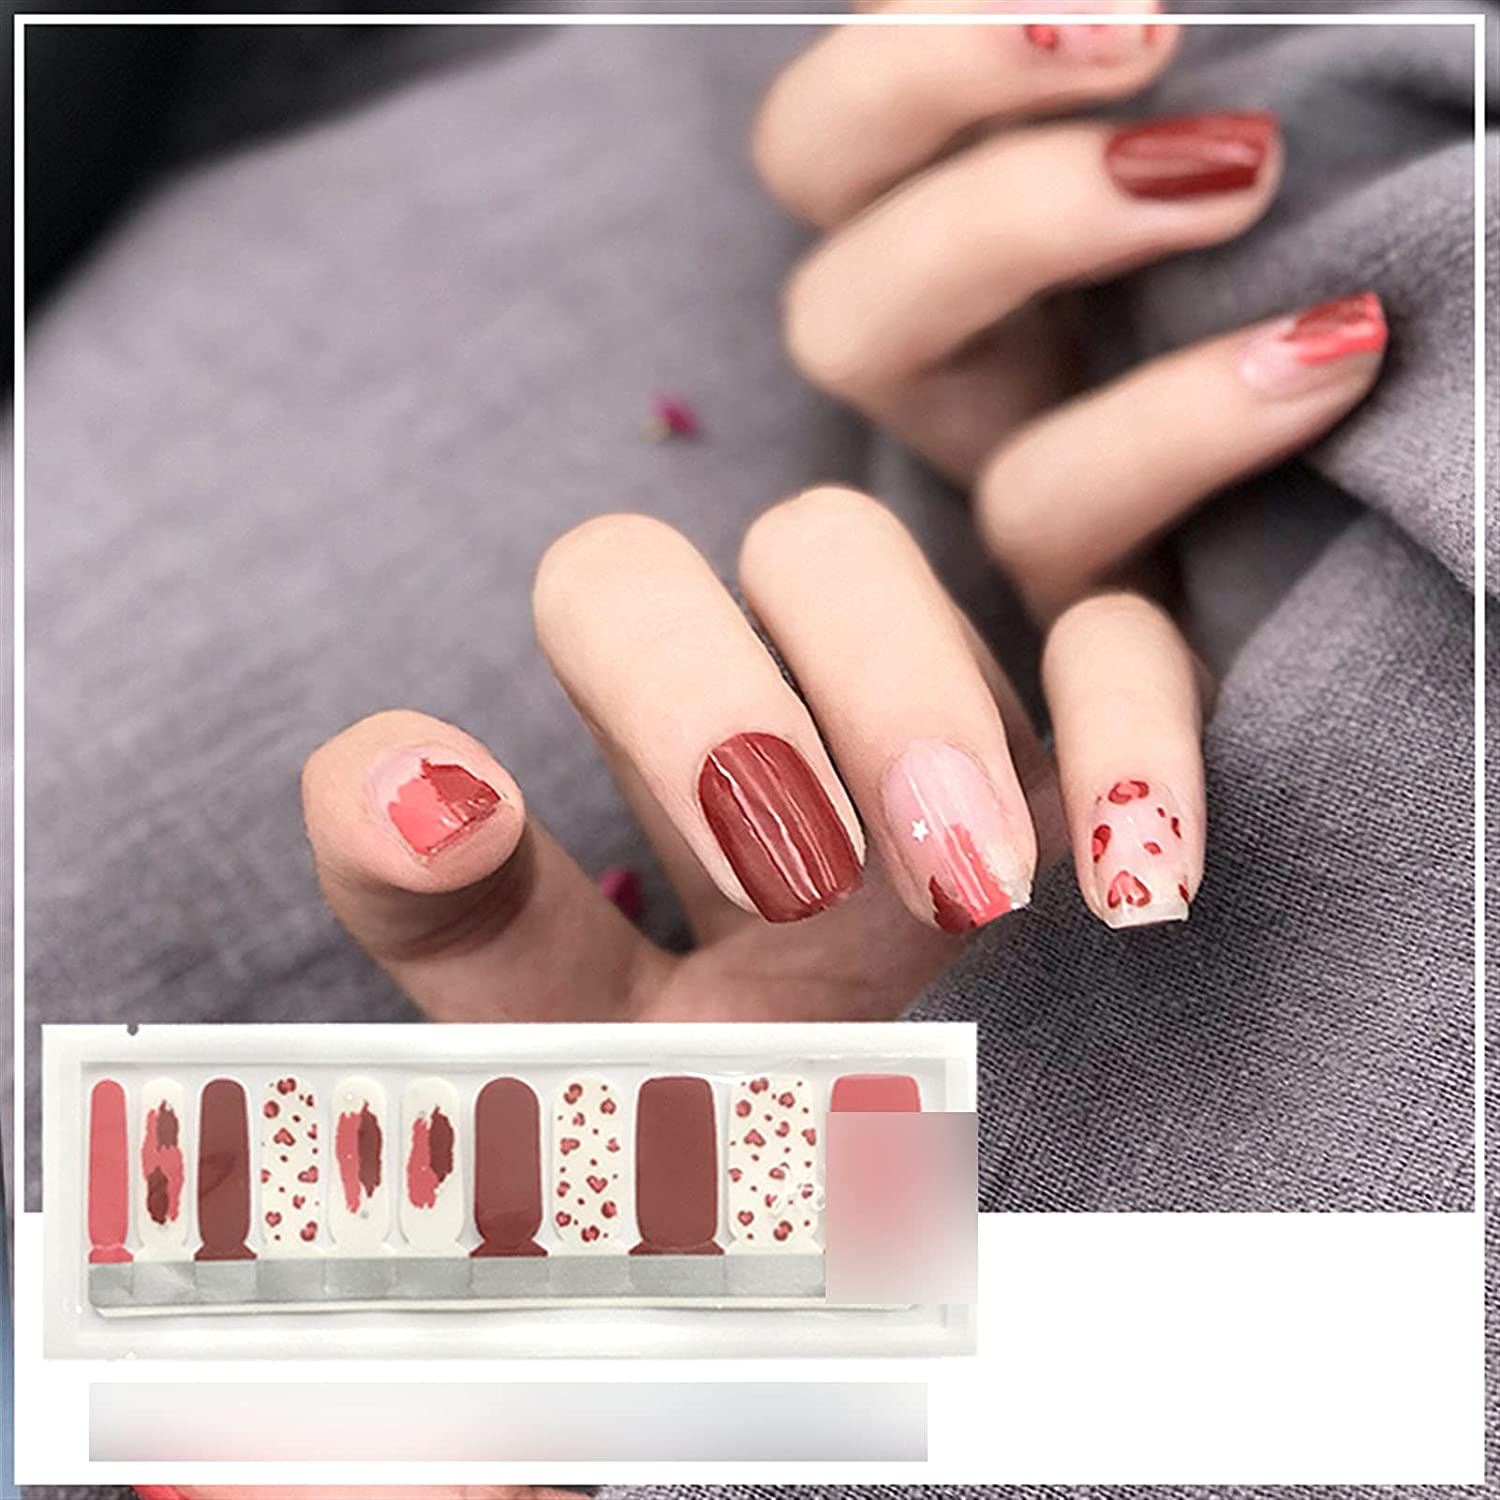 DFGJ Nail Stickers, Waterproof Nail Stickers Full Stickers,Creative Stickers, Environmentally Friendly Materials Can Be Given As Gift Graduation Gift (Color : 1): Home & Kitchen